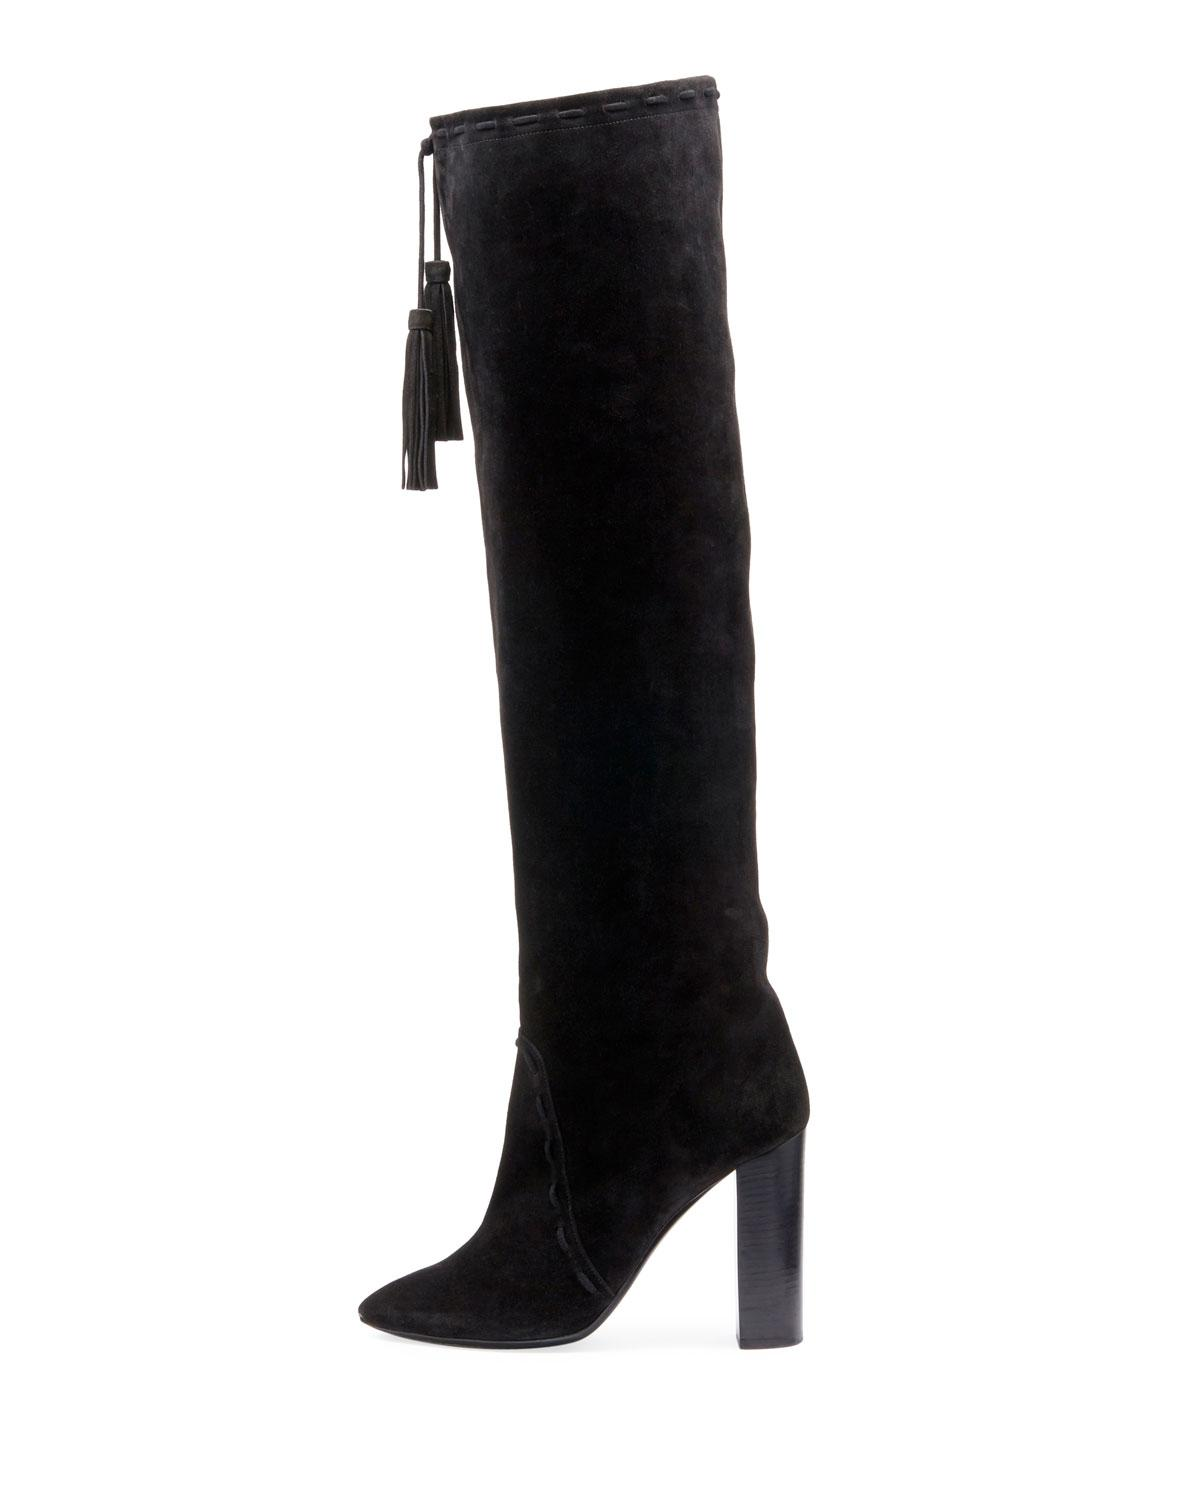 74ac96d2570 Lyst - Saint Laurent Meurice Suede Over-the-knee Boot in Black - Save 29%